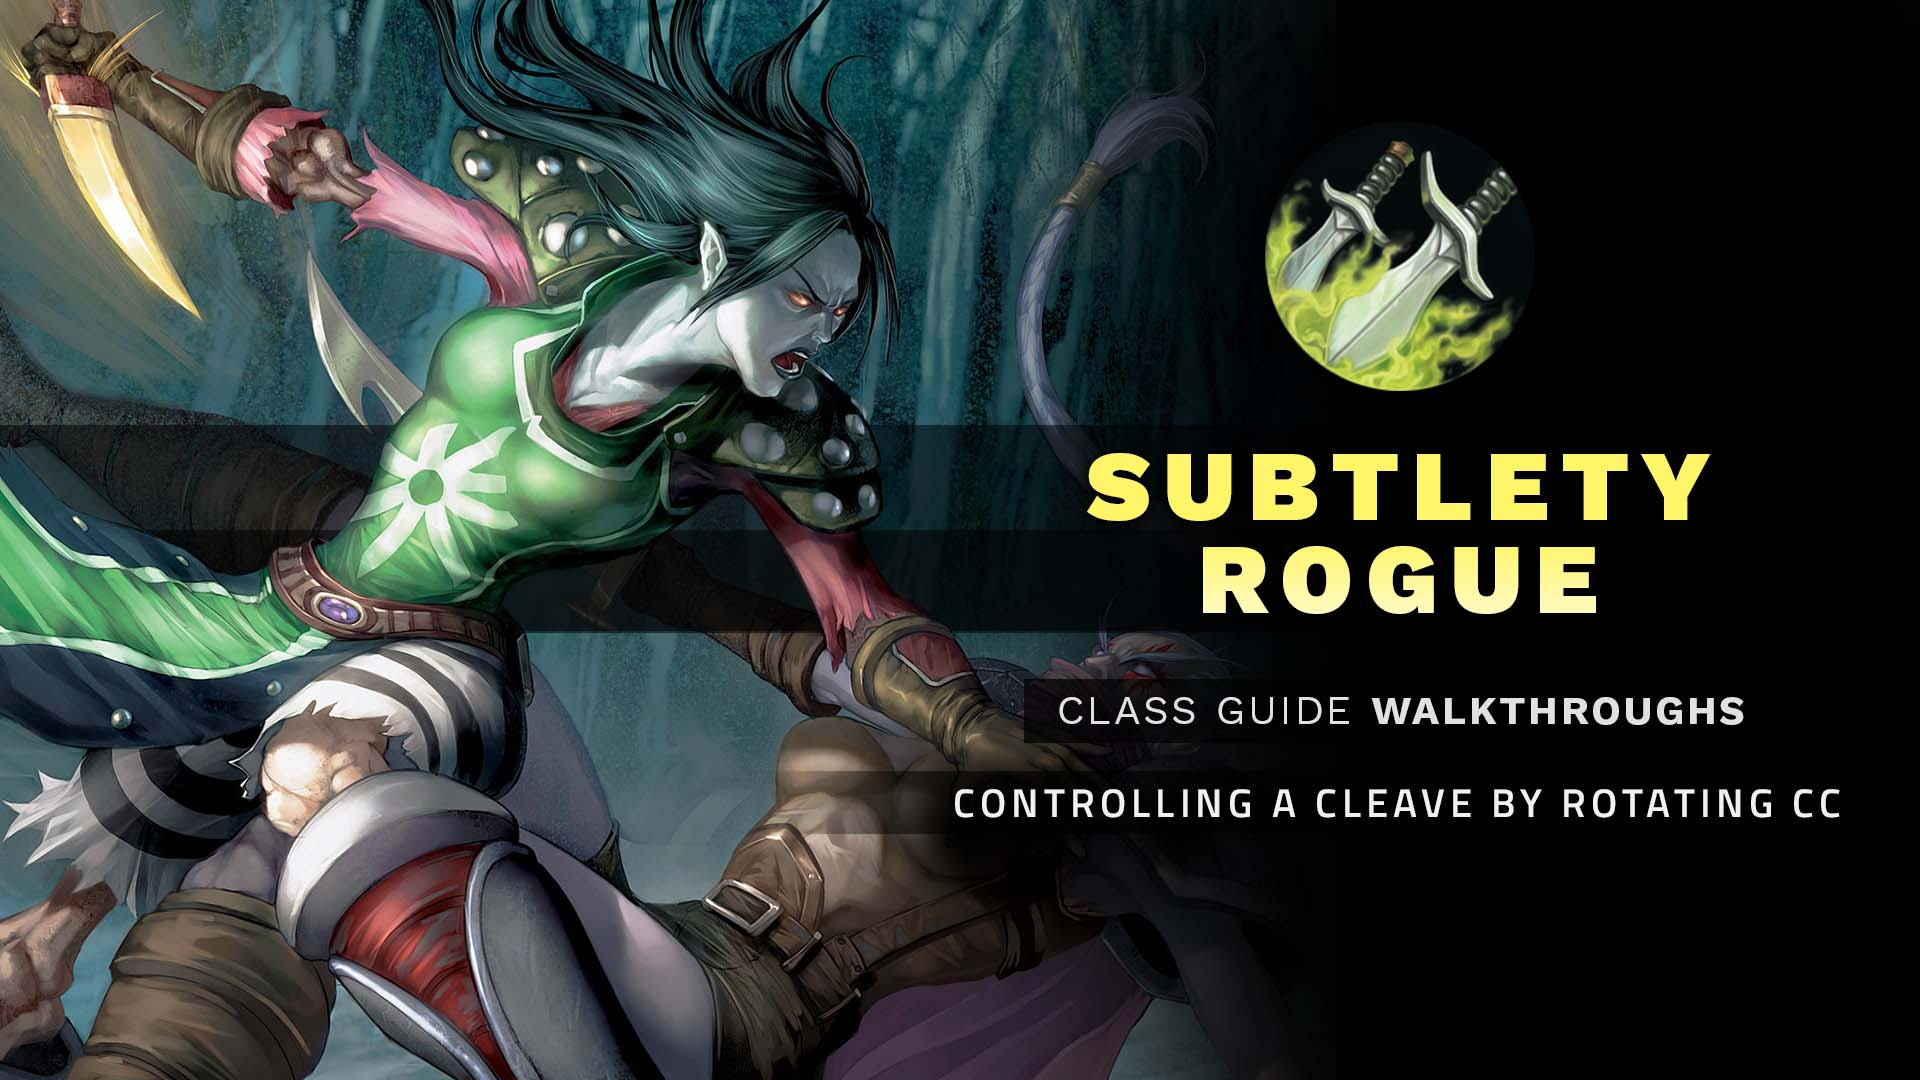 Rogue hunting log rank 1 - Subtlety Rogue Cgw Controlling A Cleave By Rotating Cc Wow Pvp Guide